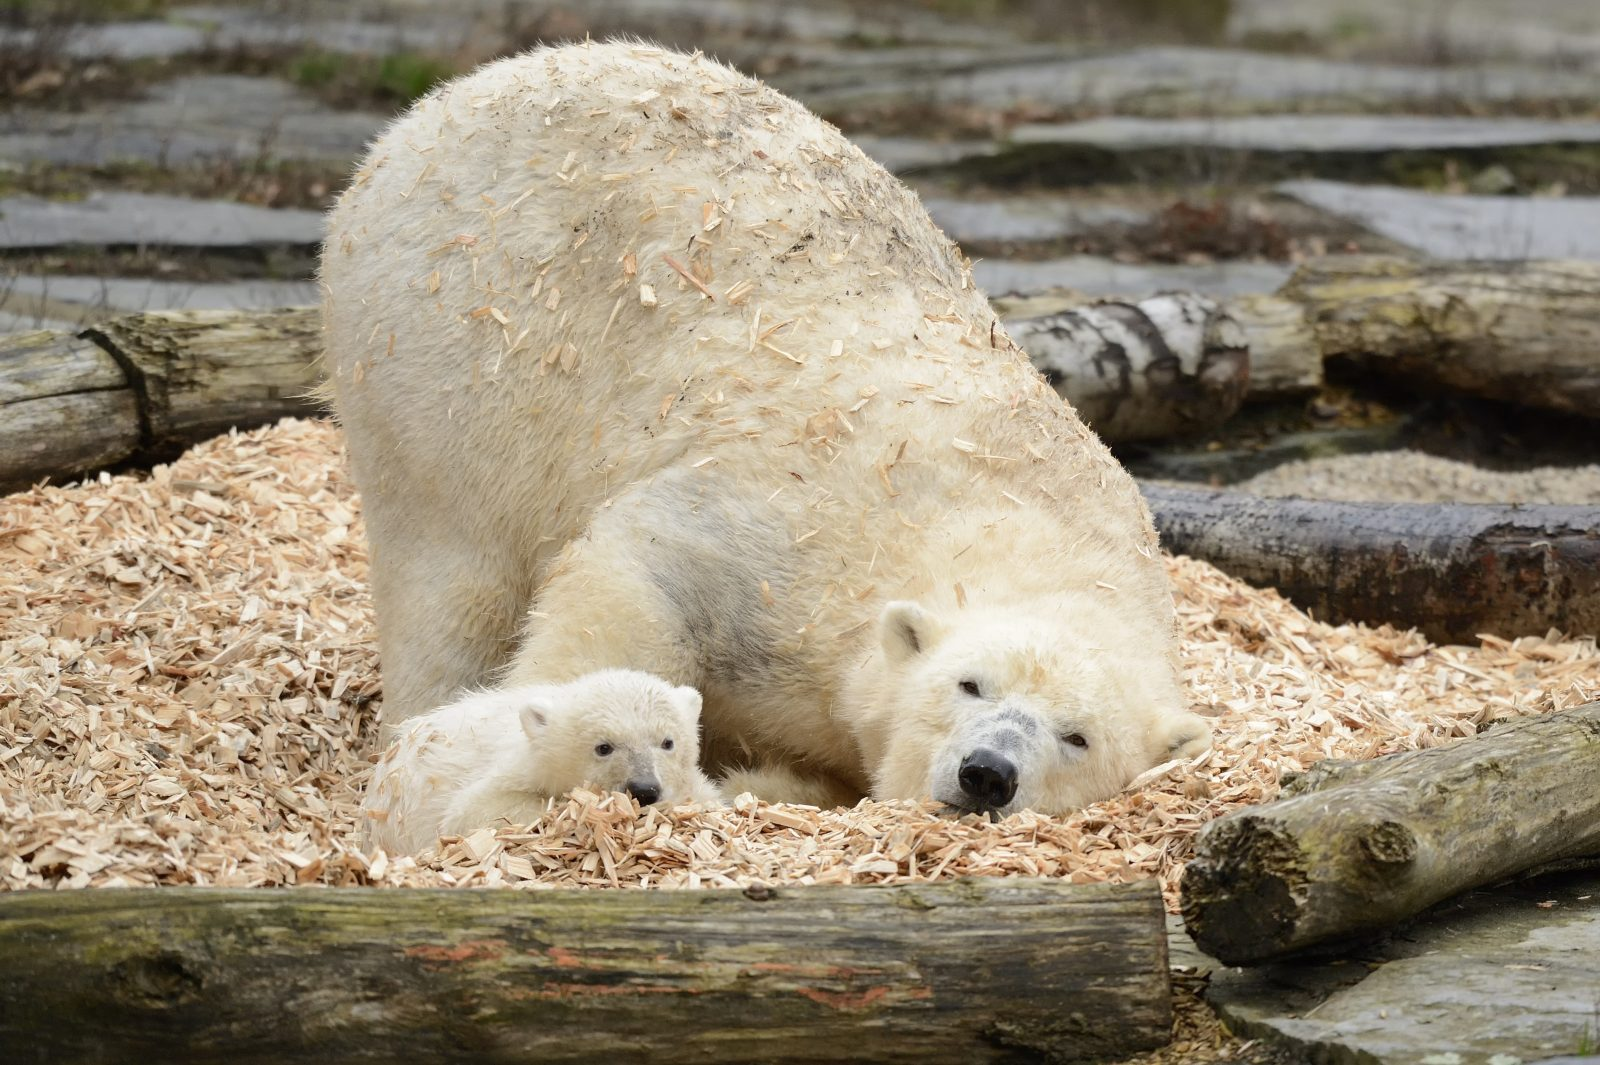 Polar bear cub Hertha with her mum Tonja lying in a pile of wood chips at East Berlin's zoo Tierpark Berlin.